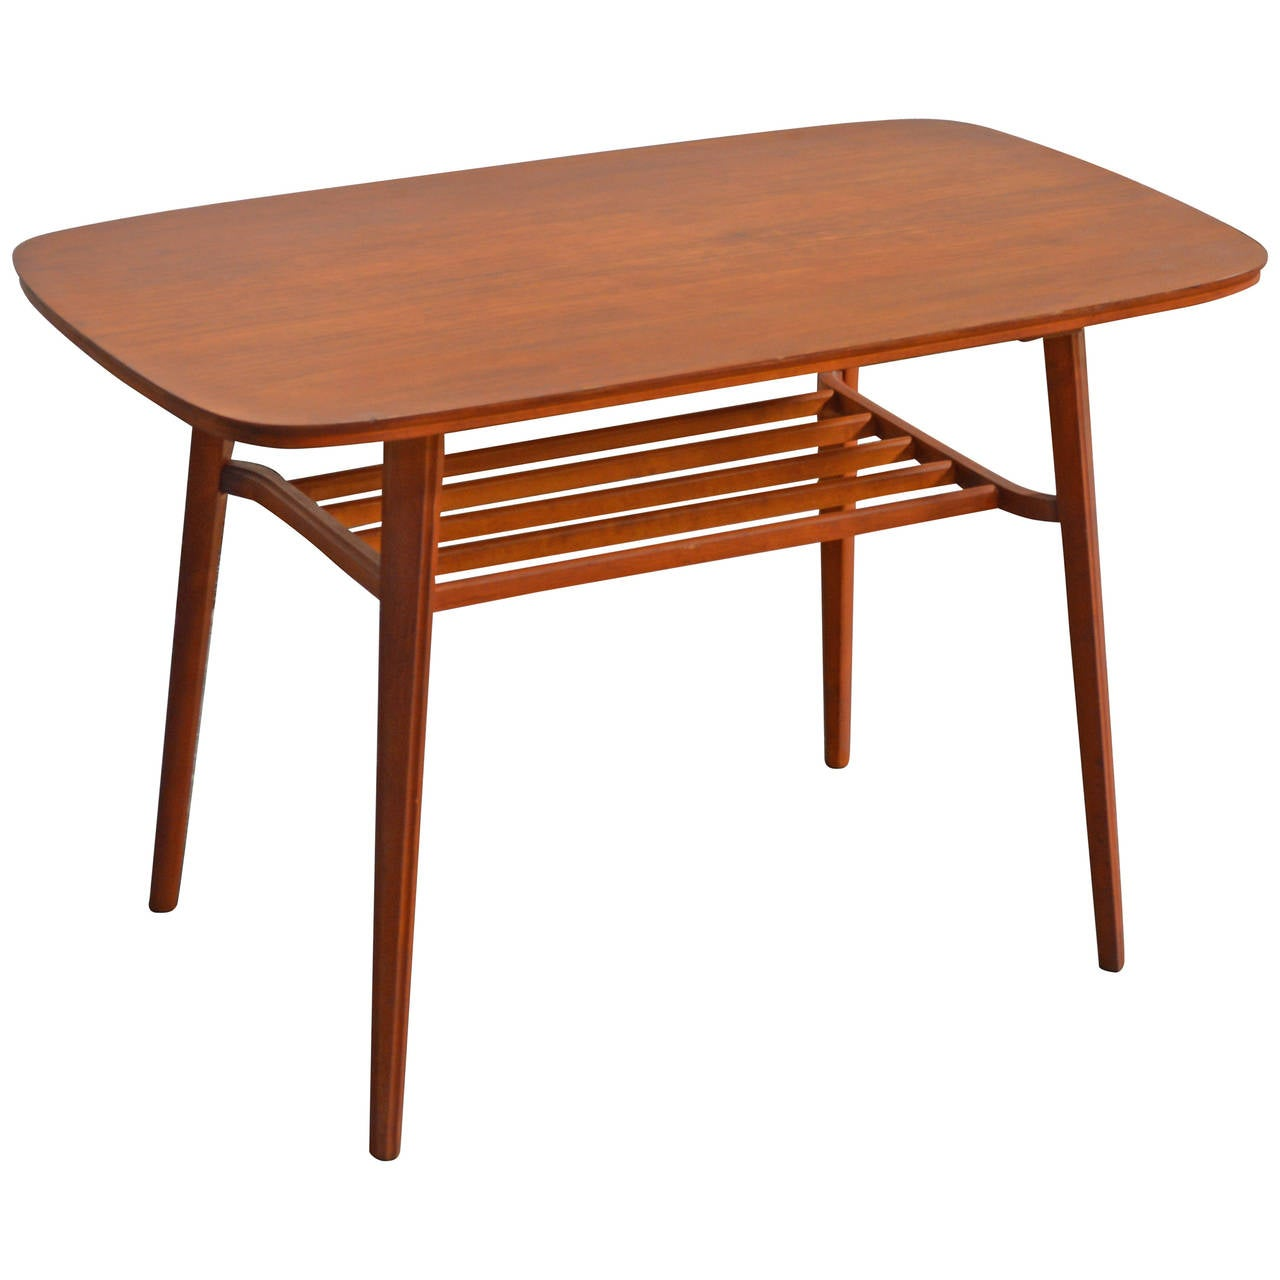 Swedish Mid-Century Teak Coffee Table For Sale At 1stdibs